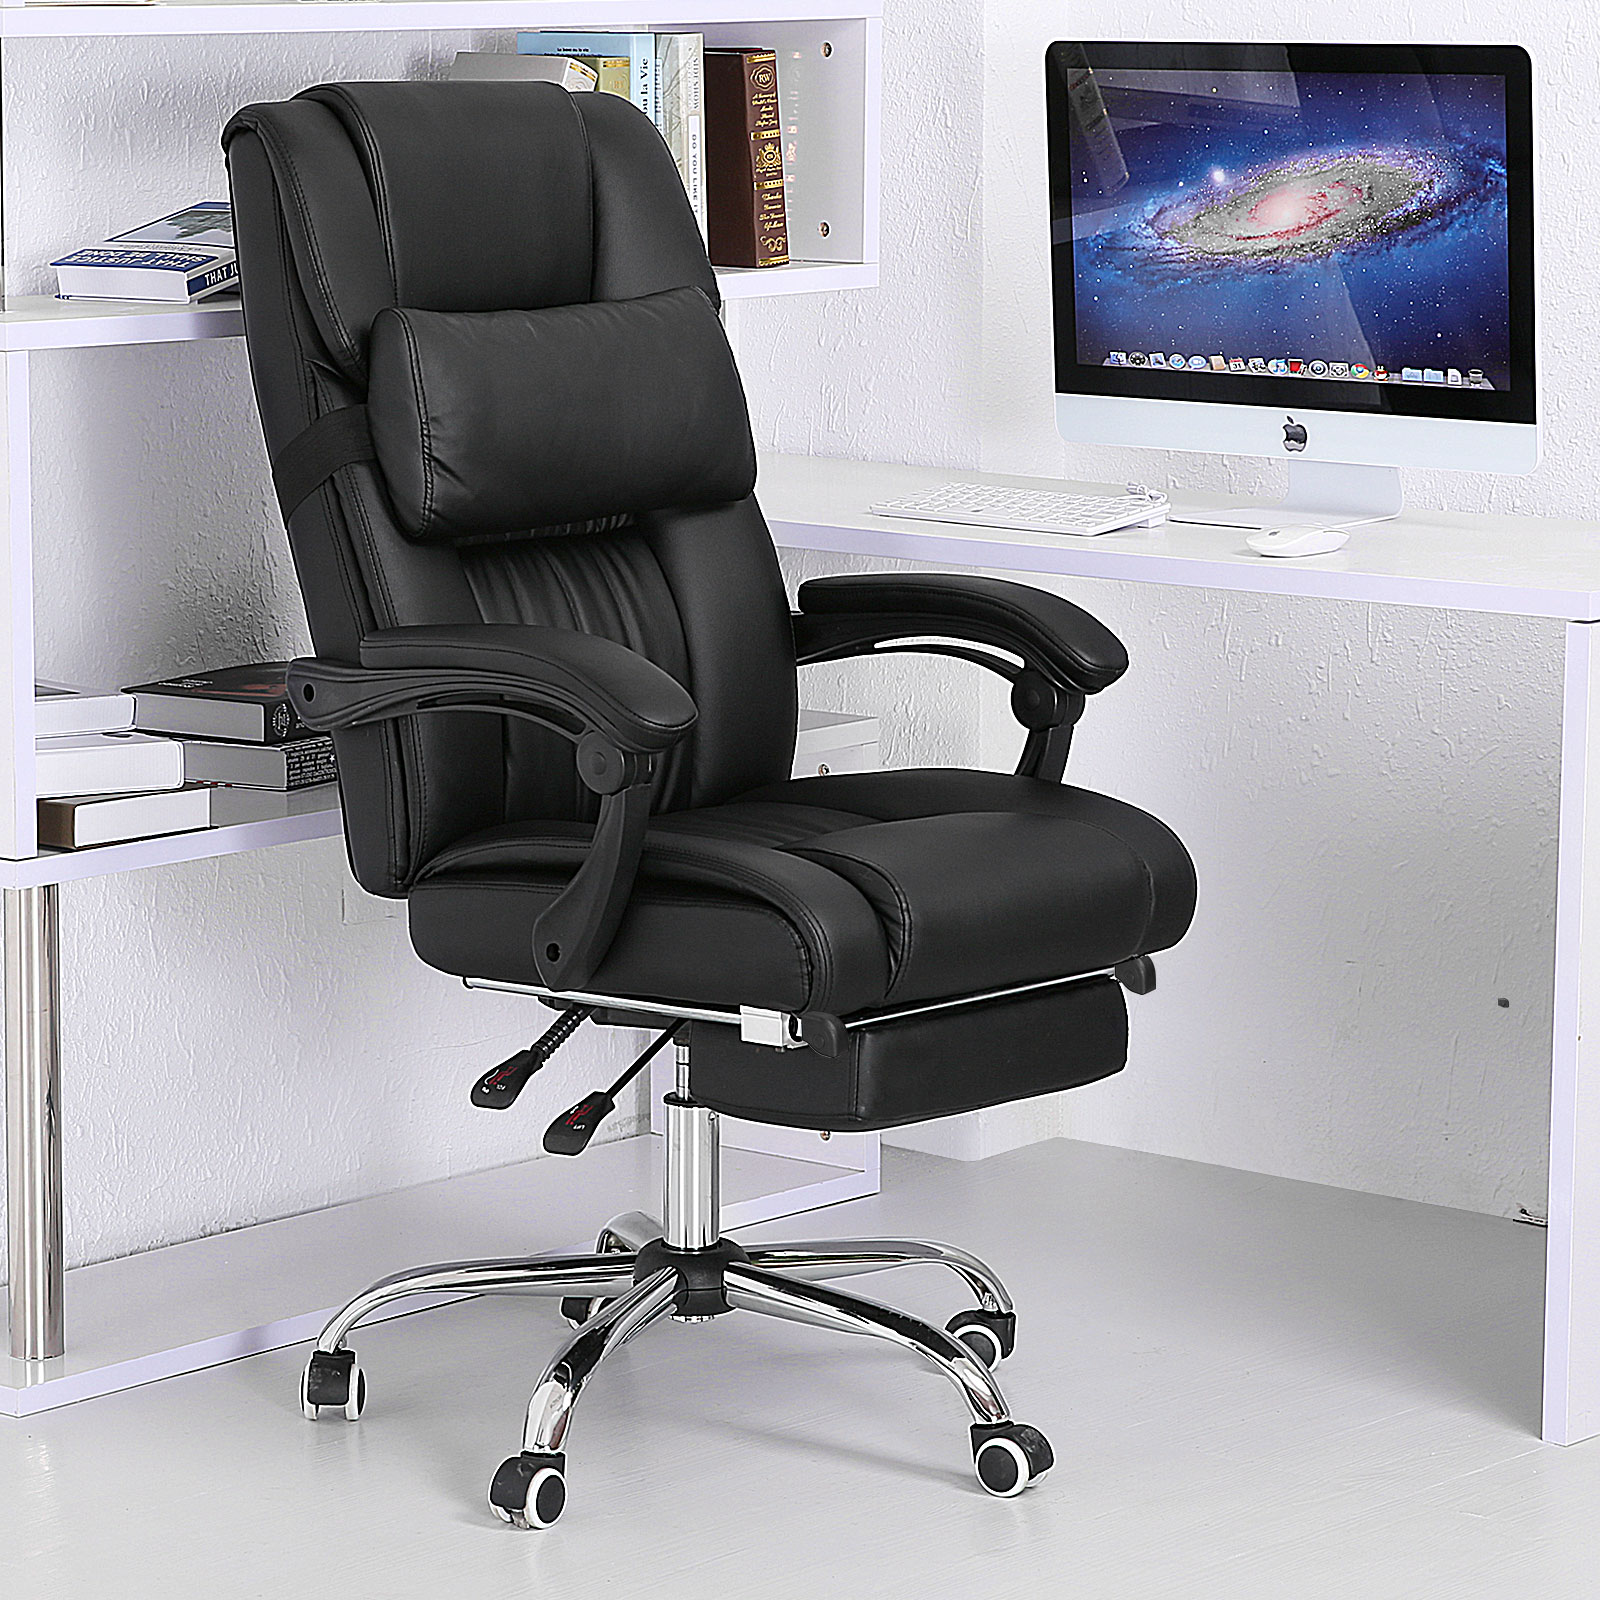 office chair footrest best cheap chairs executive ergonomic high back reclining